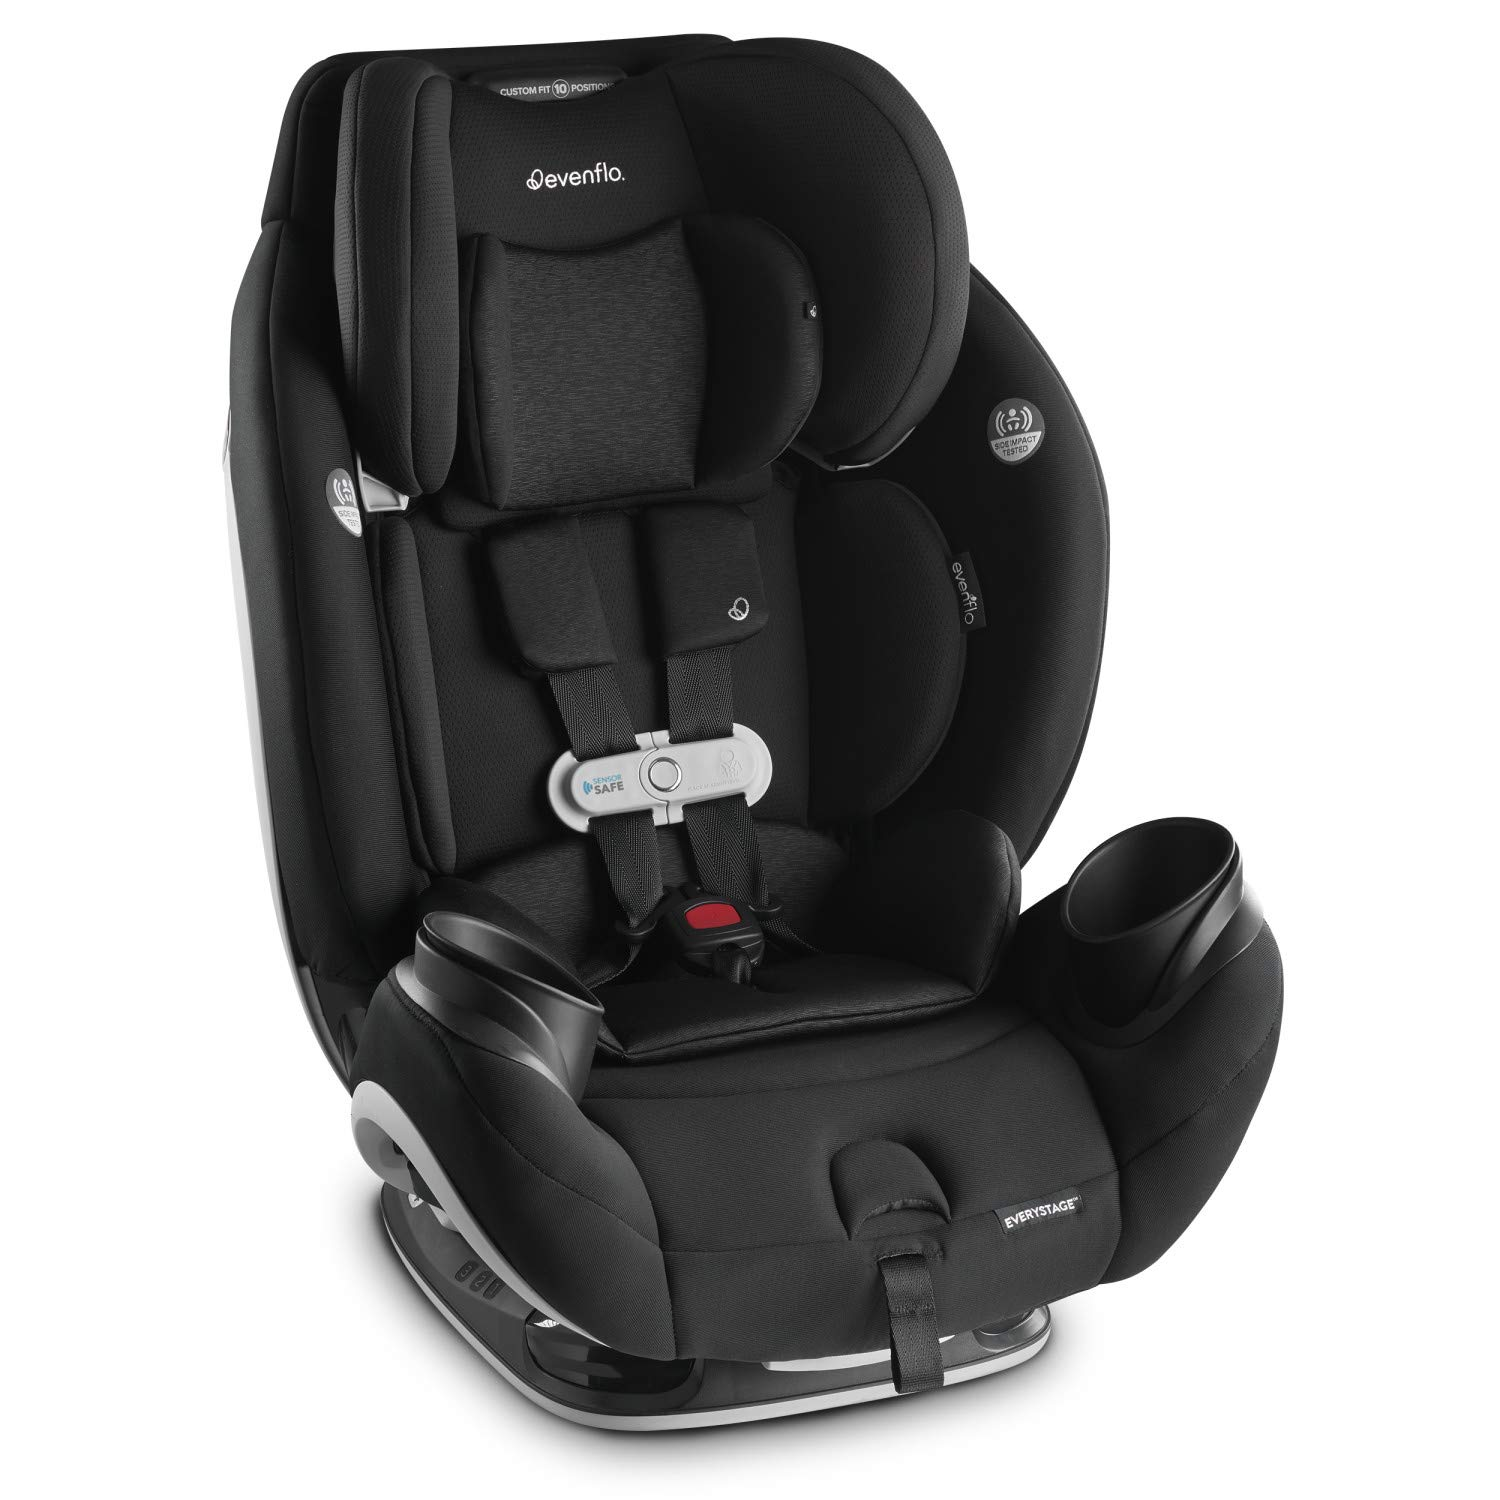 Onyx Evenflo Gold SensorSafe EveryStage Smart All-in-One Convertible Car Seat